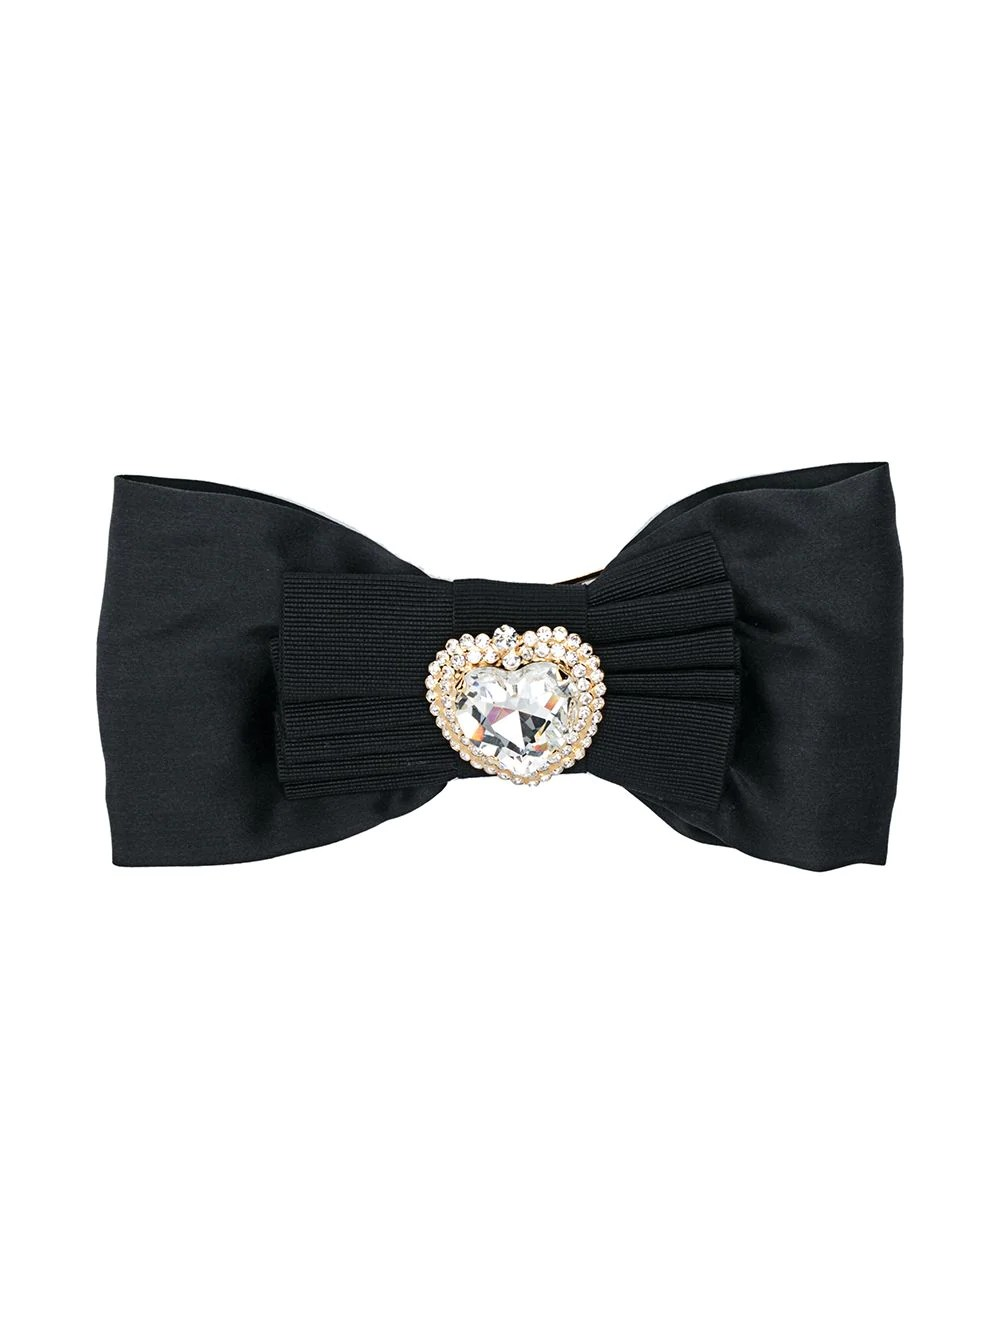 BOW WITH CRYSTAL HEART EMBELLISHMENT